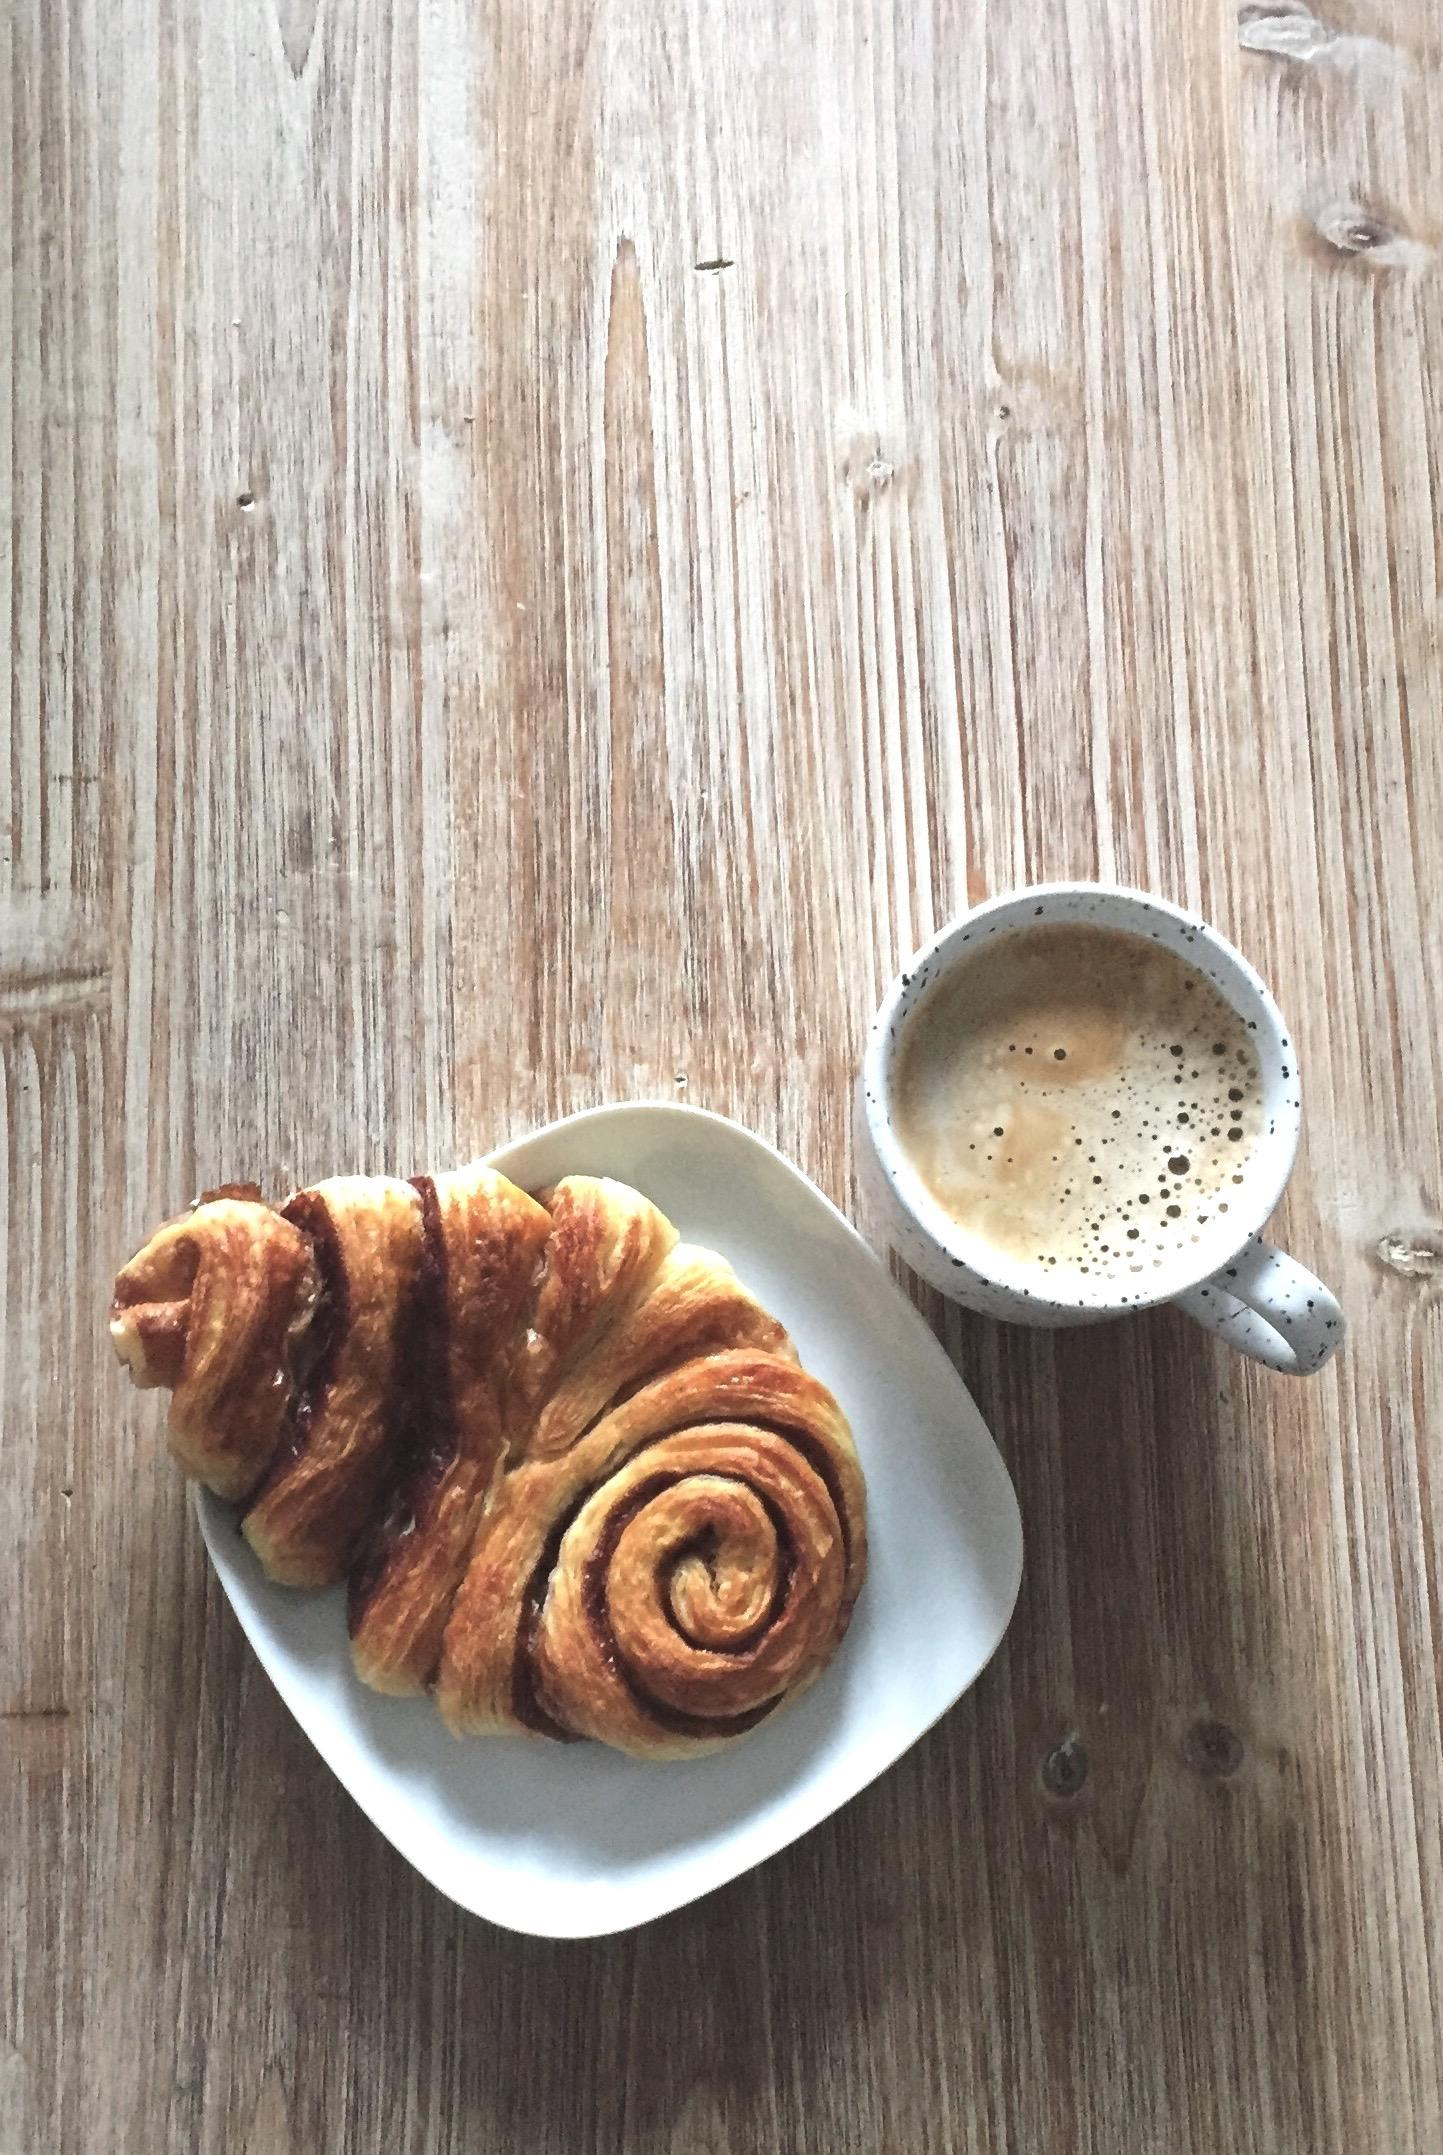 Rainy Saturdays & studying treatment #franzbrötchen #howtostudy #butfirstcoffee #regentag